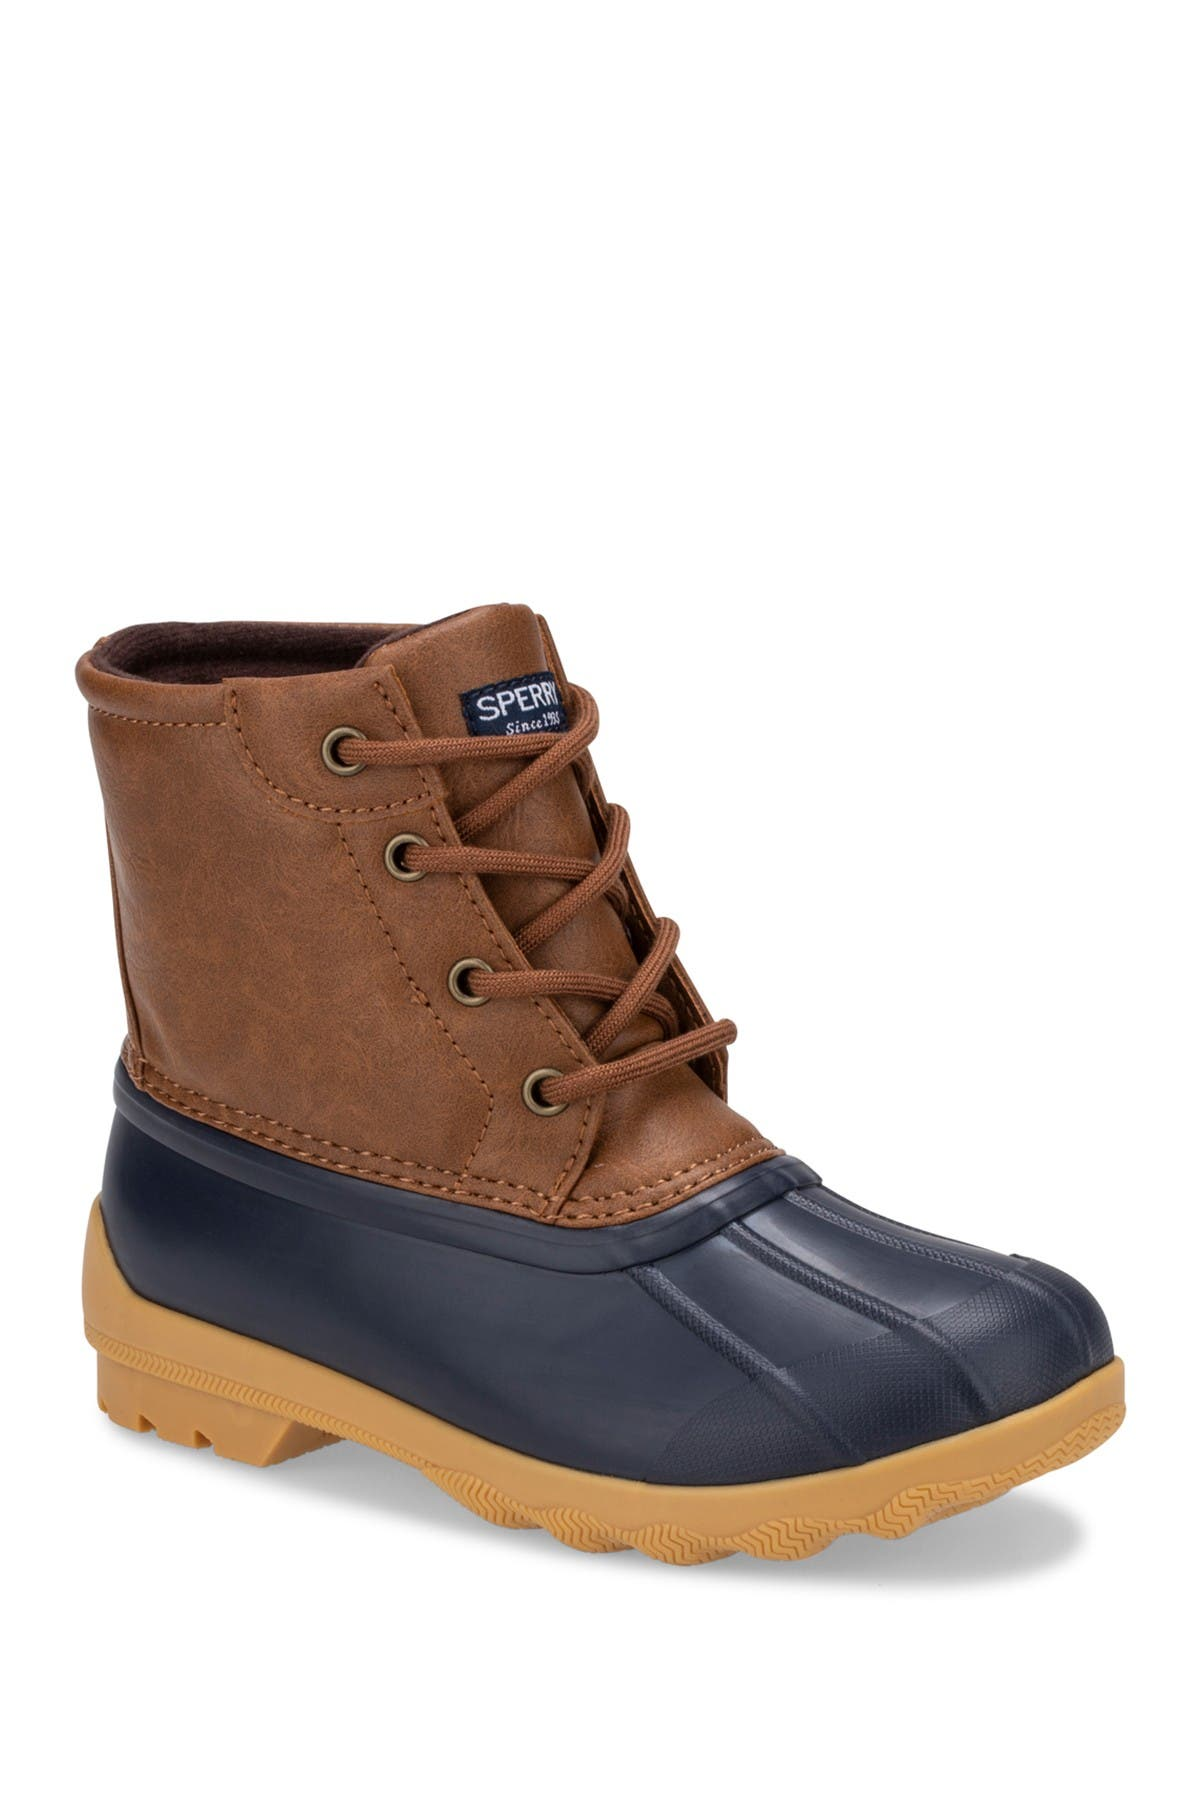 Image of Sperry Port Boot